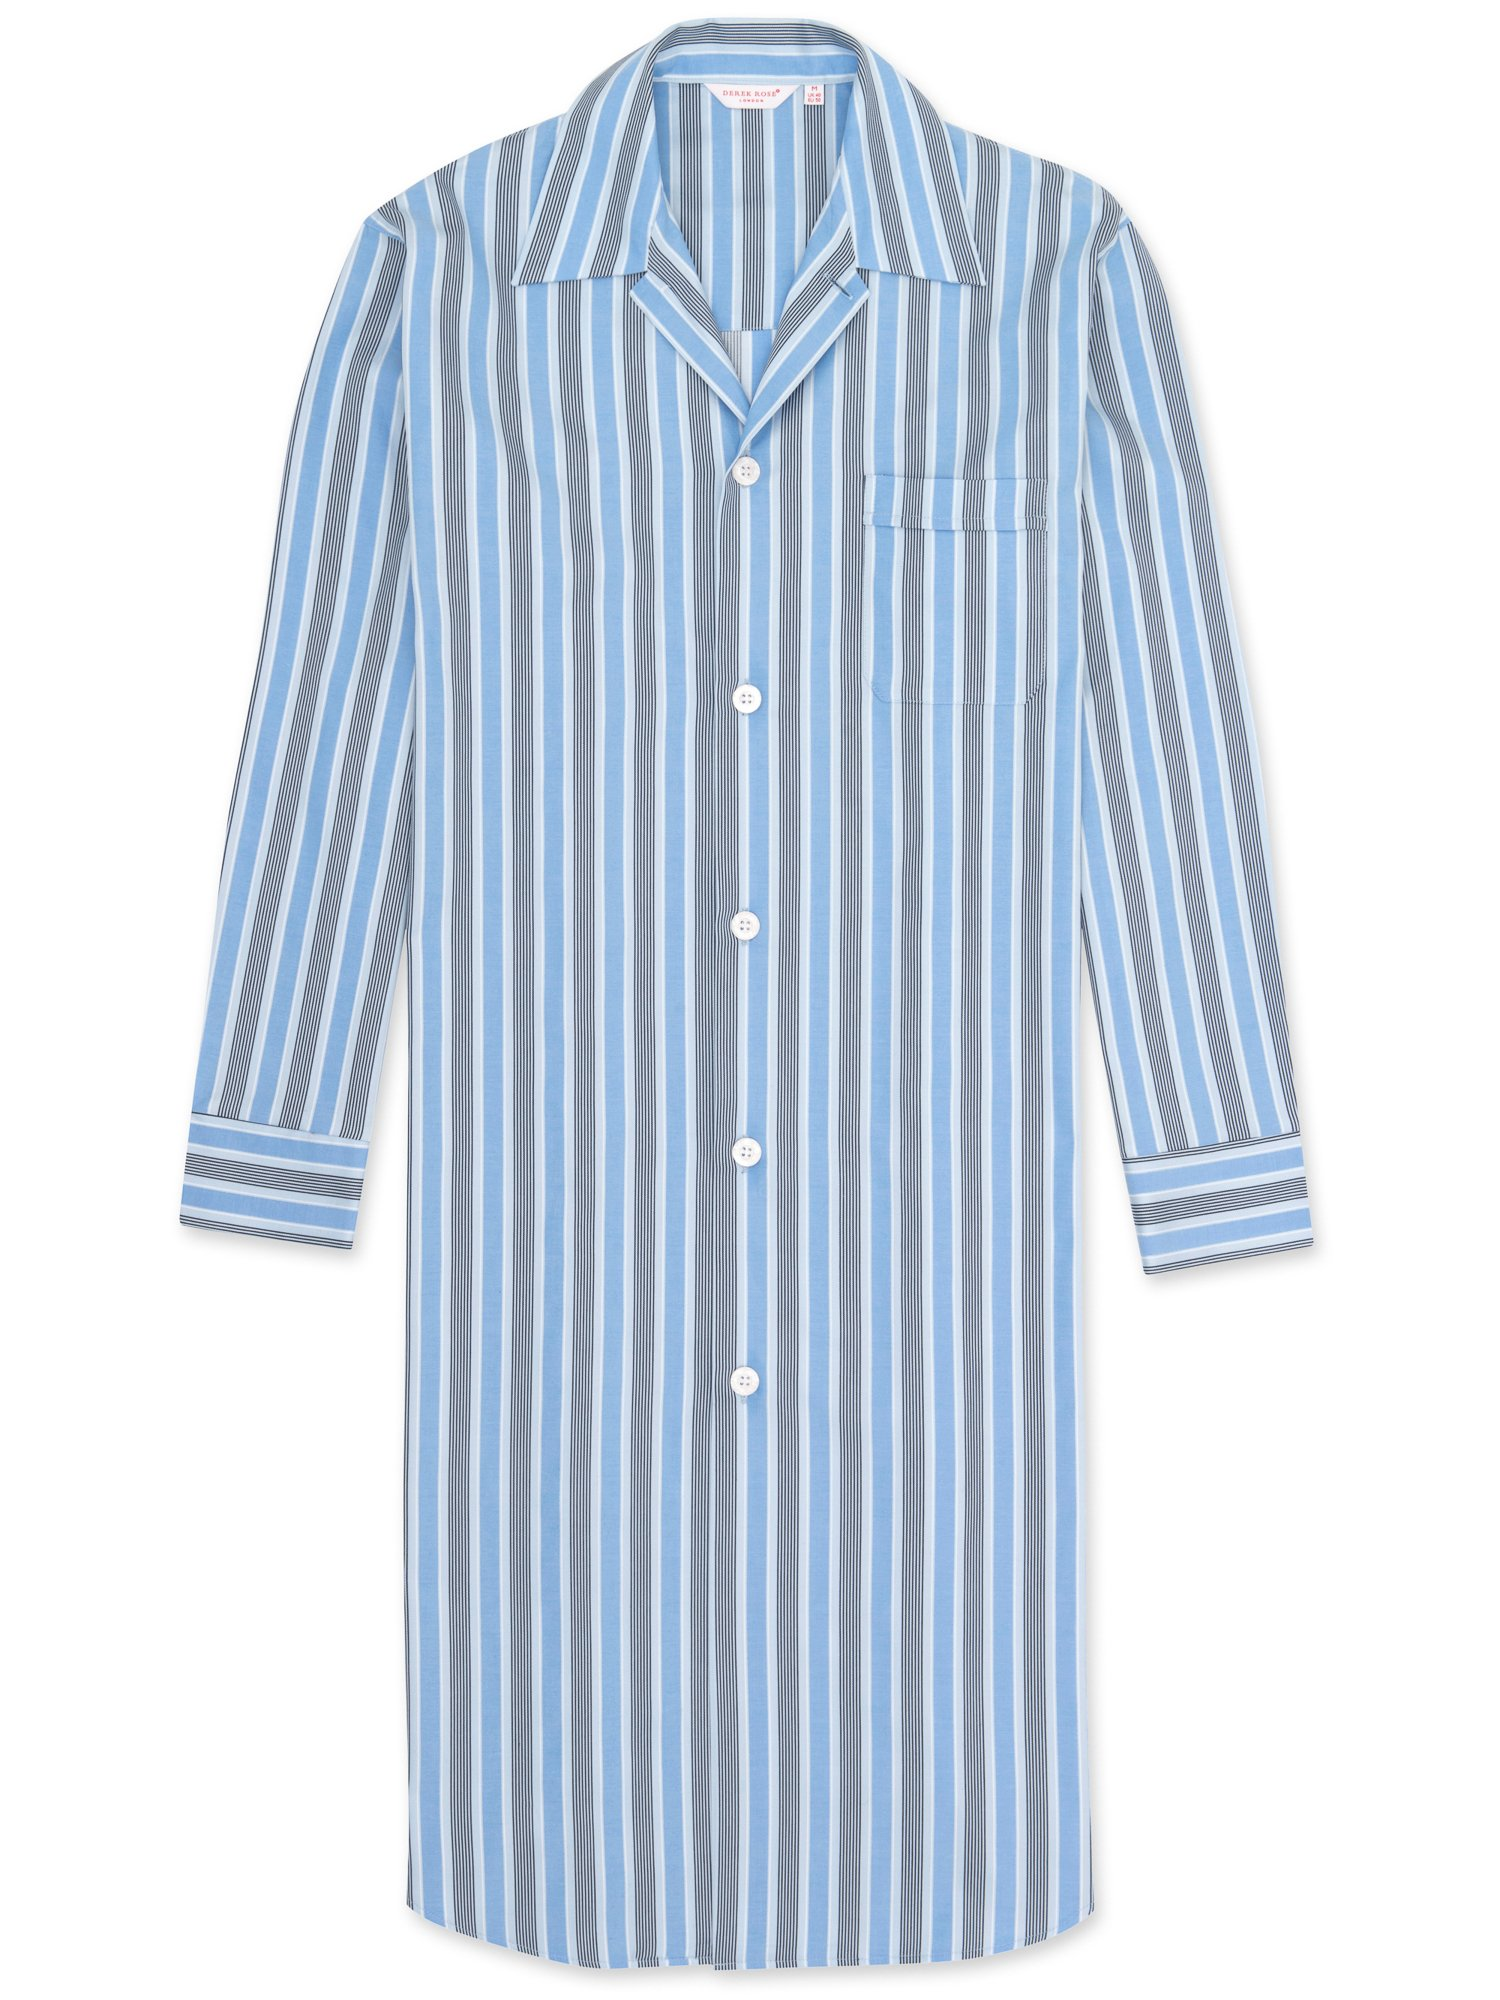 Men's Button-Through Nightshirt Mayfair 66 Cotton Satin Stripe Blue